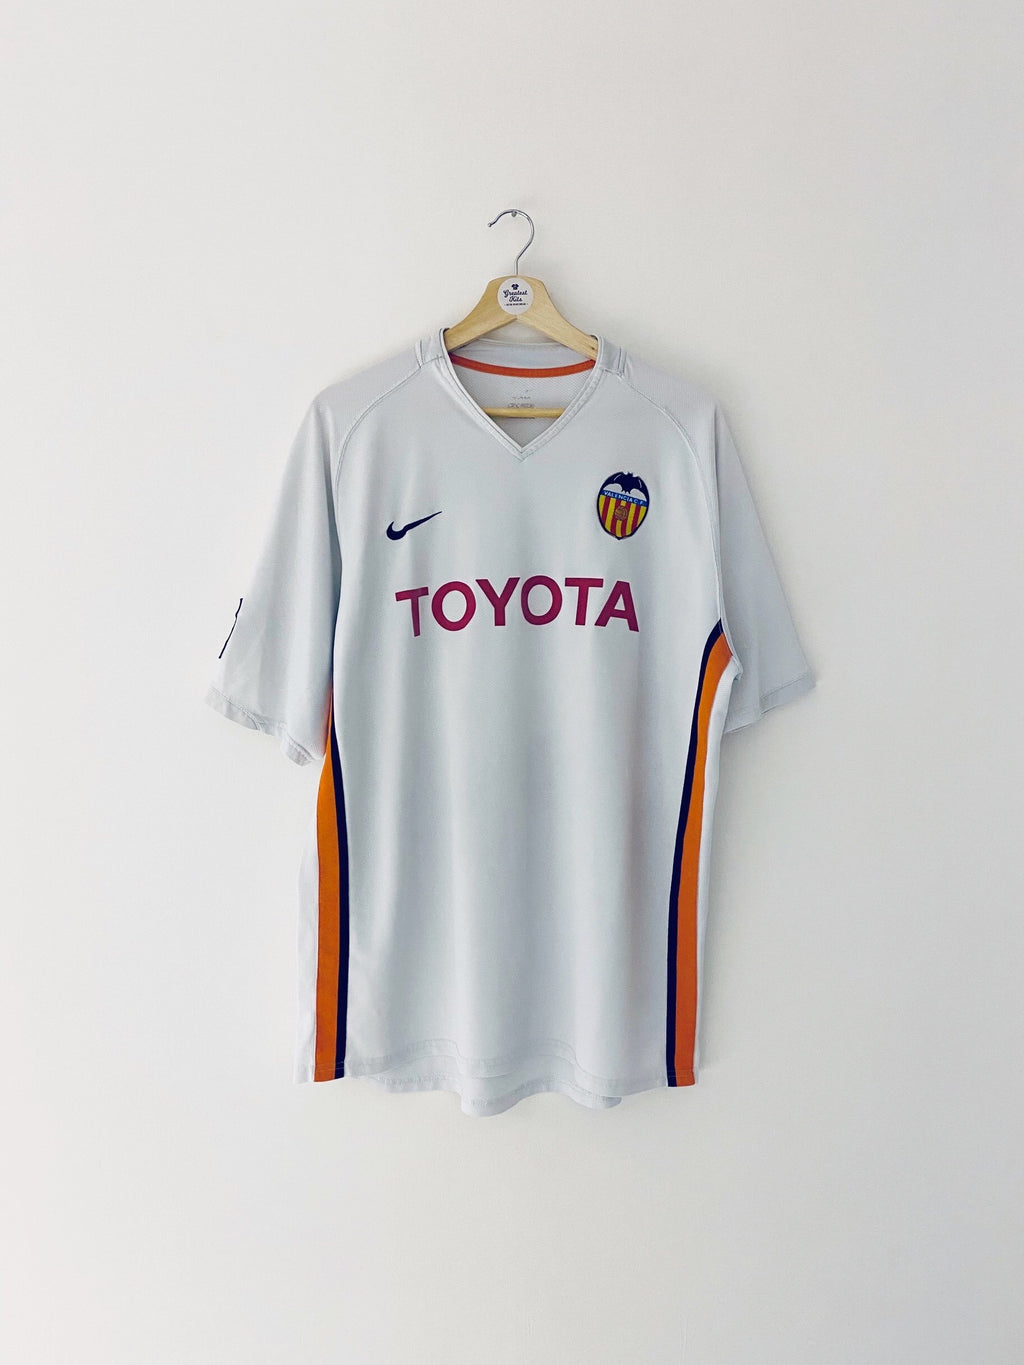 2006/07 Valencia Home Shirt (XL) 6.5/10